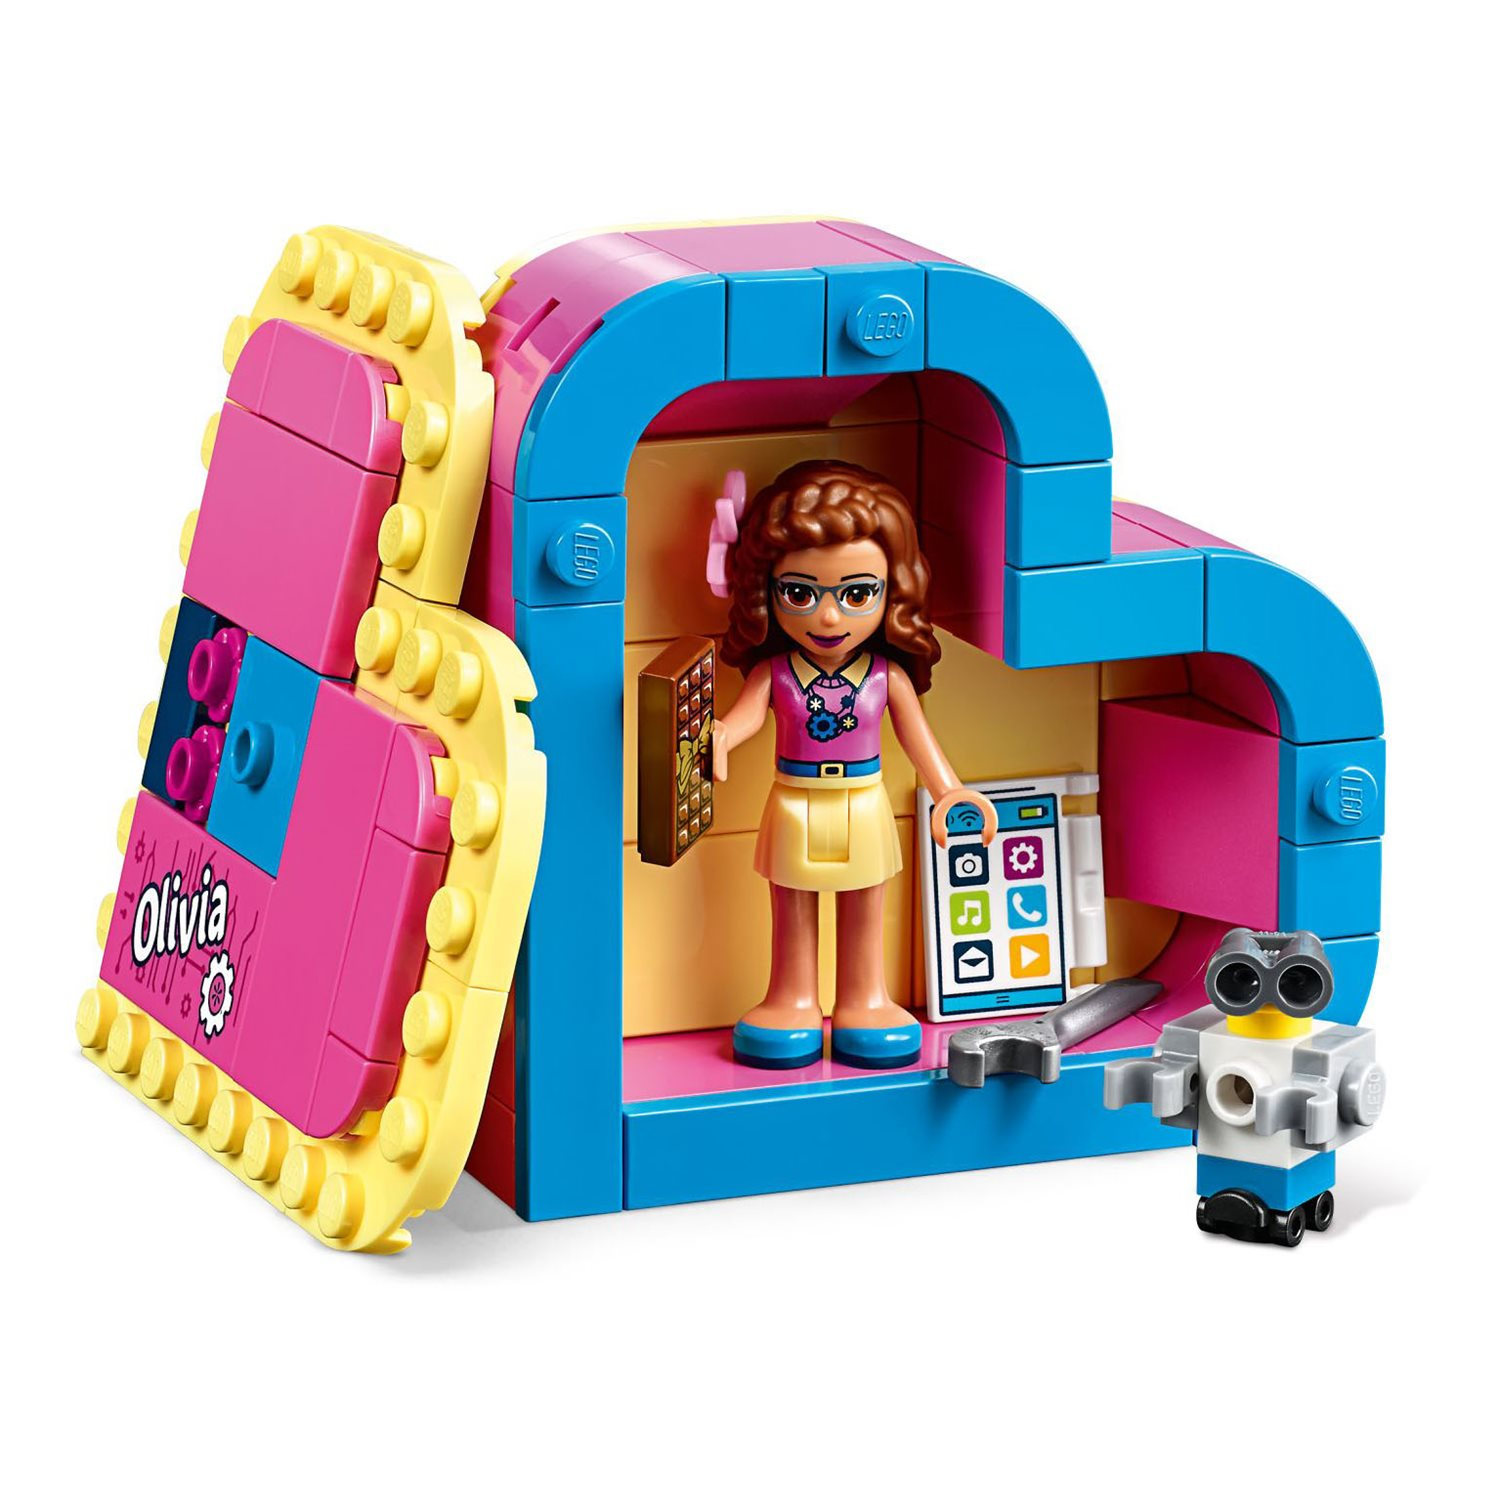 Lego Friends Olivia's Zwembad 41090 Lego 41357 Friends Olivias Herzbox